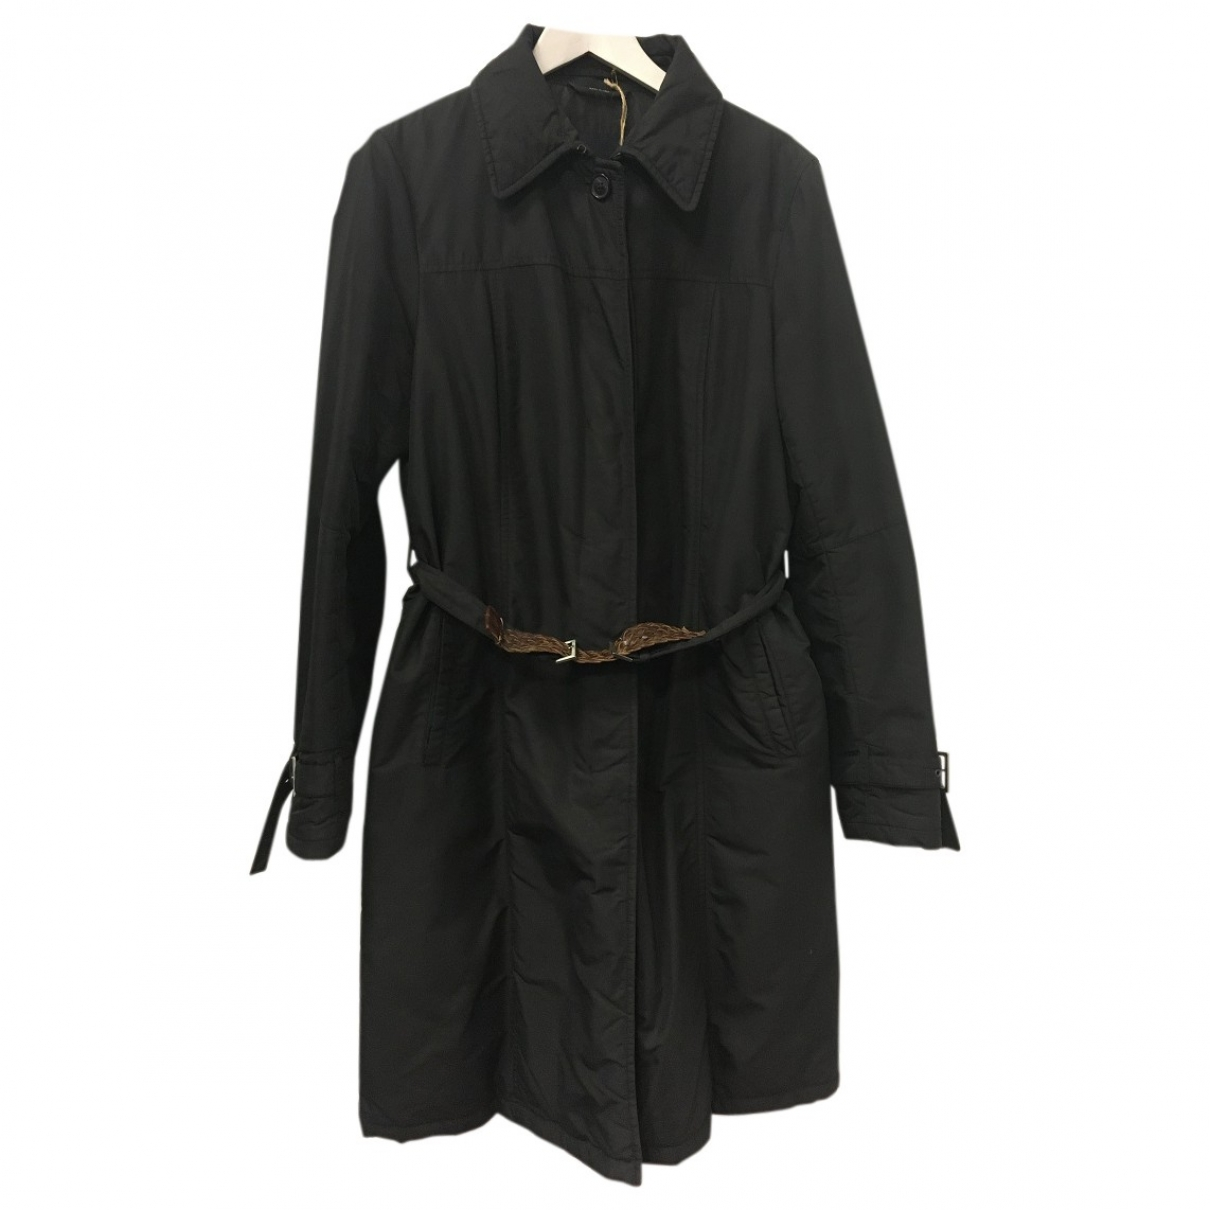 Max Mara 's \N Black coat for Women 46 IT